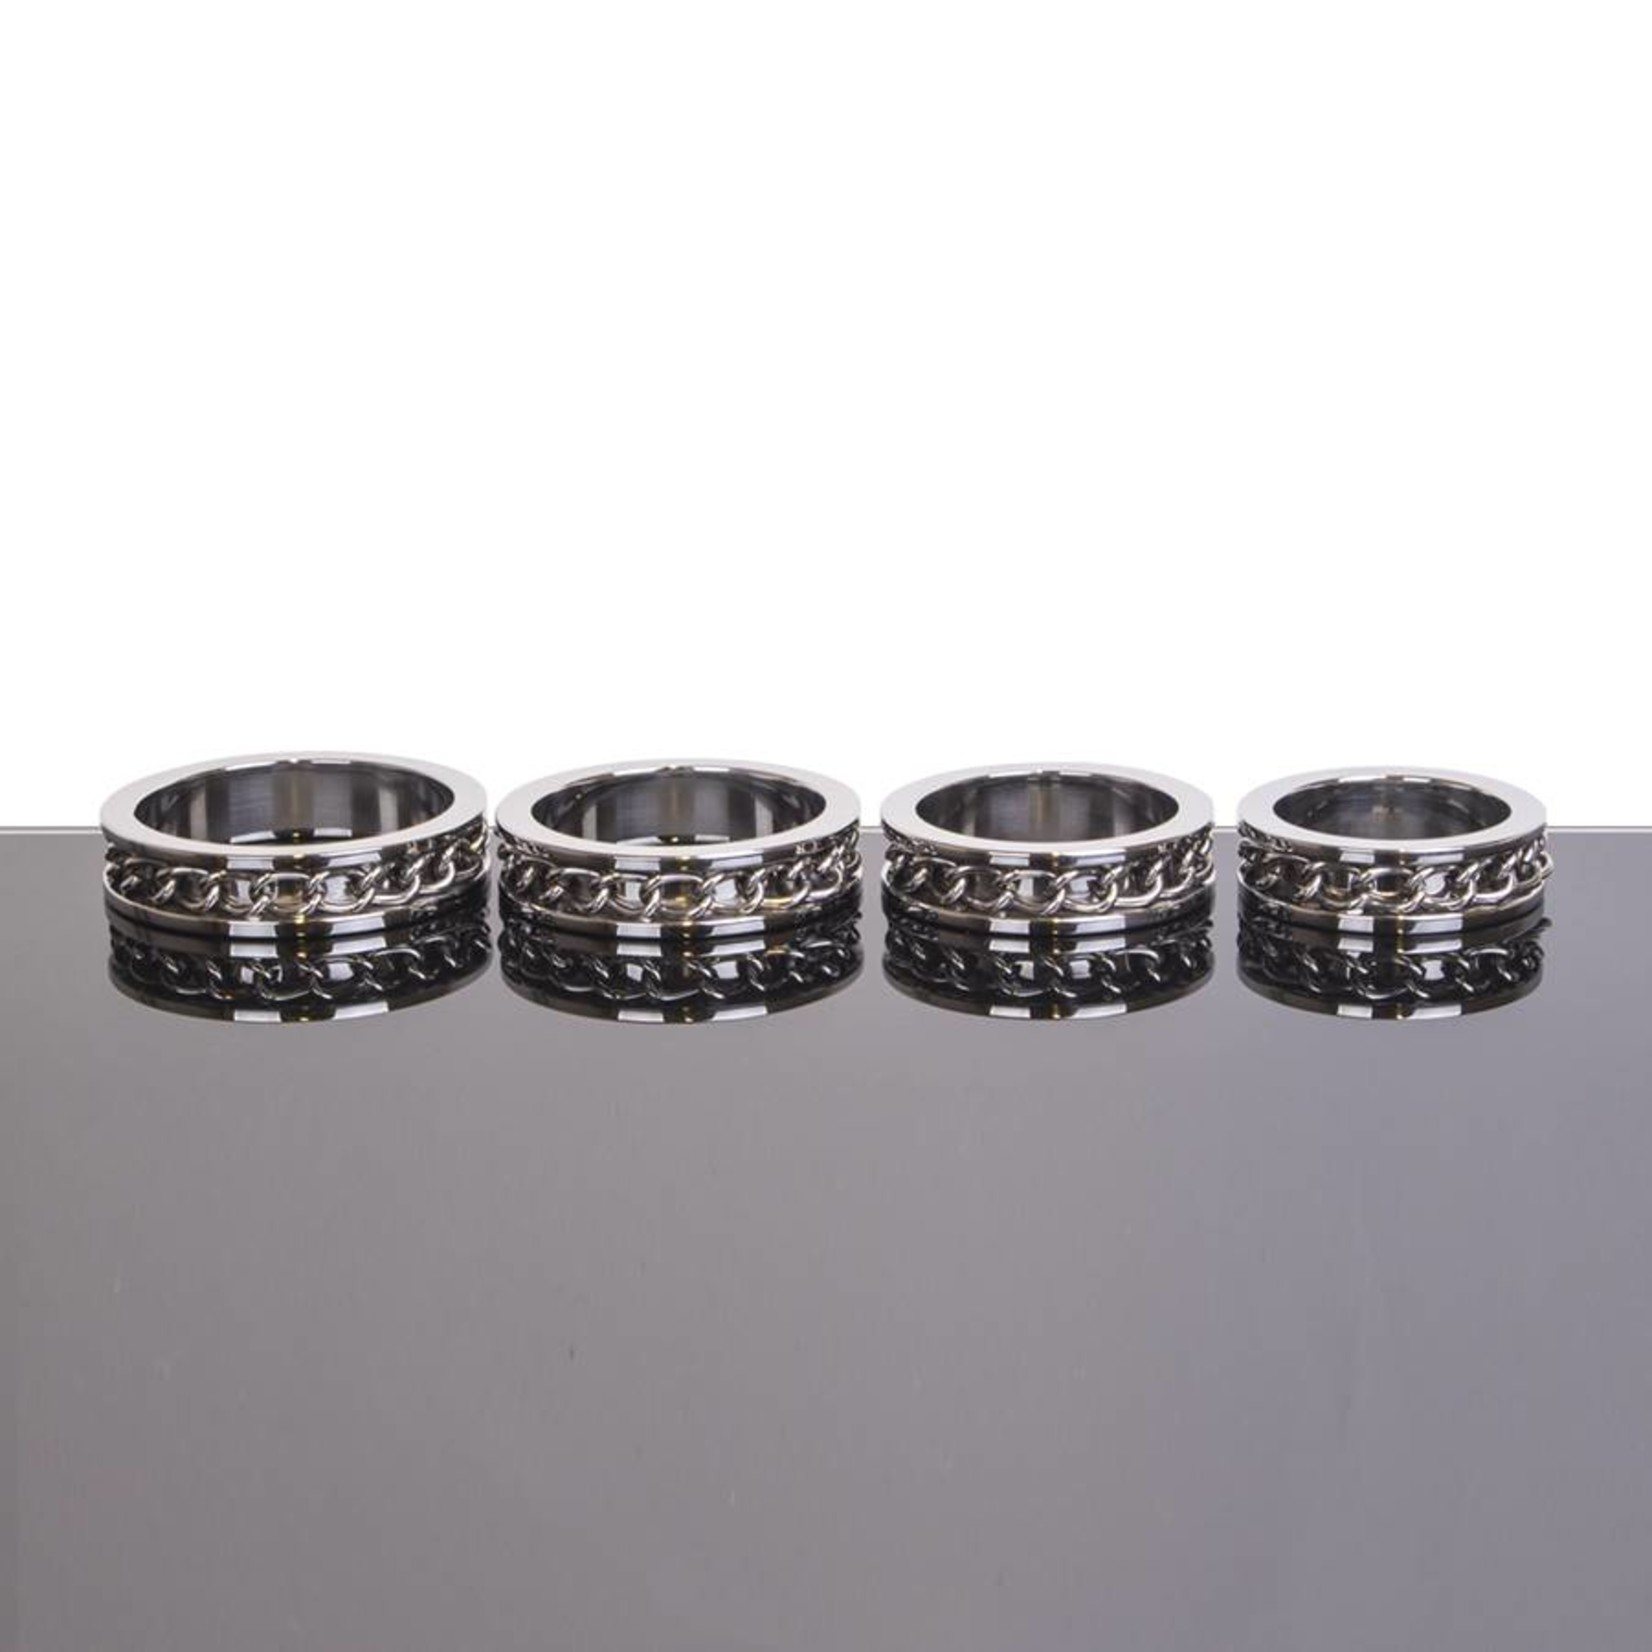 KIOTOS Steel Chain Link Inlay Cock Ring - Stainless Steel - 40mm